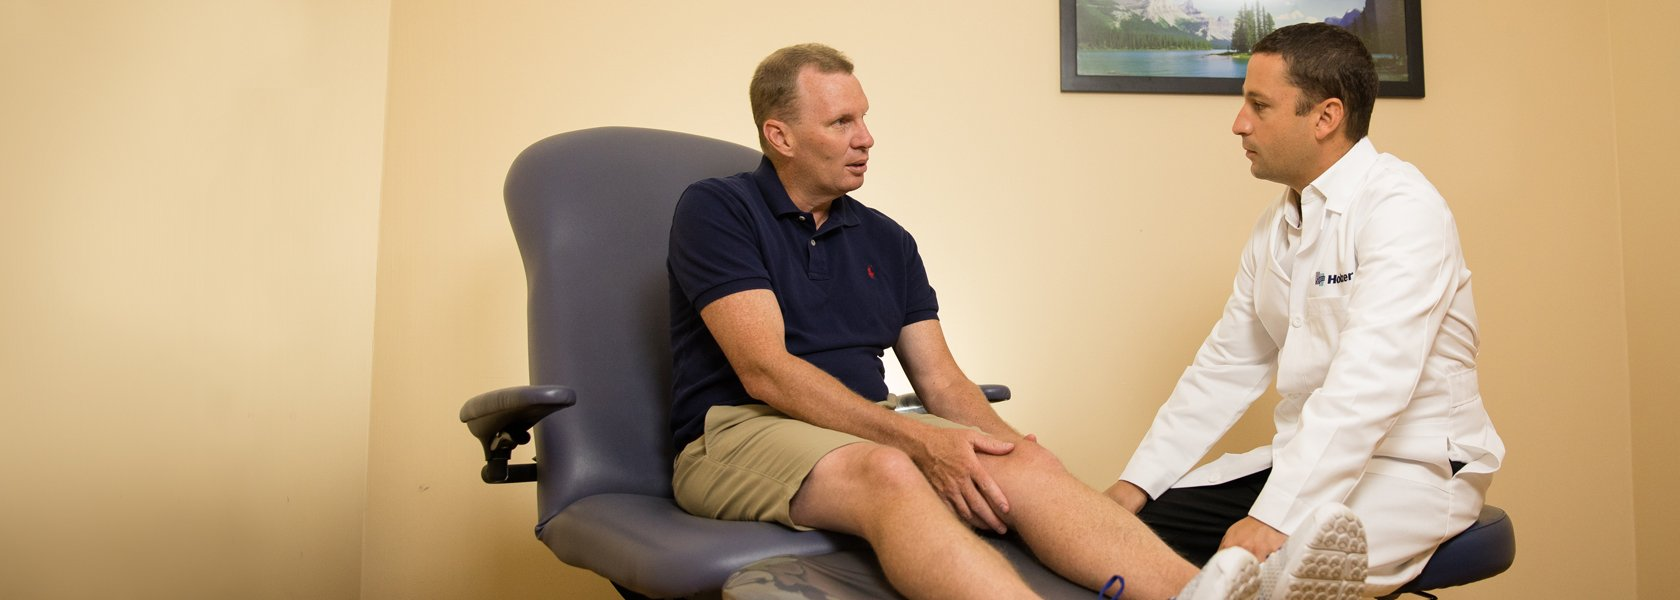 Orthopedic Patient with Dr. Zierenberg - banner image